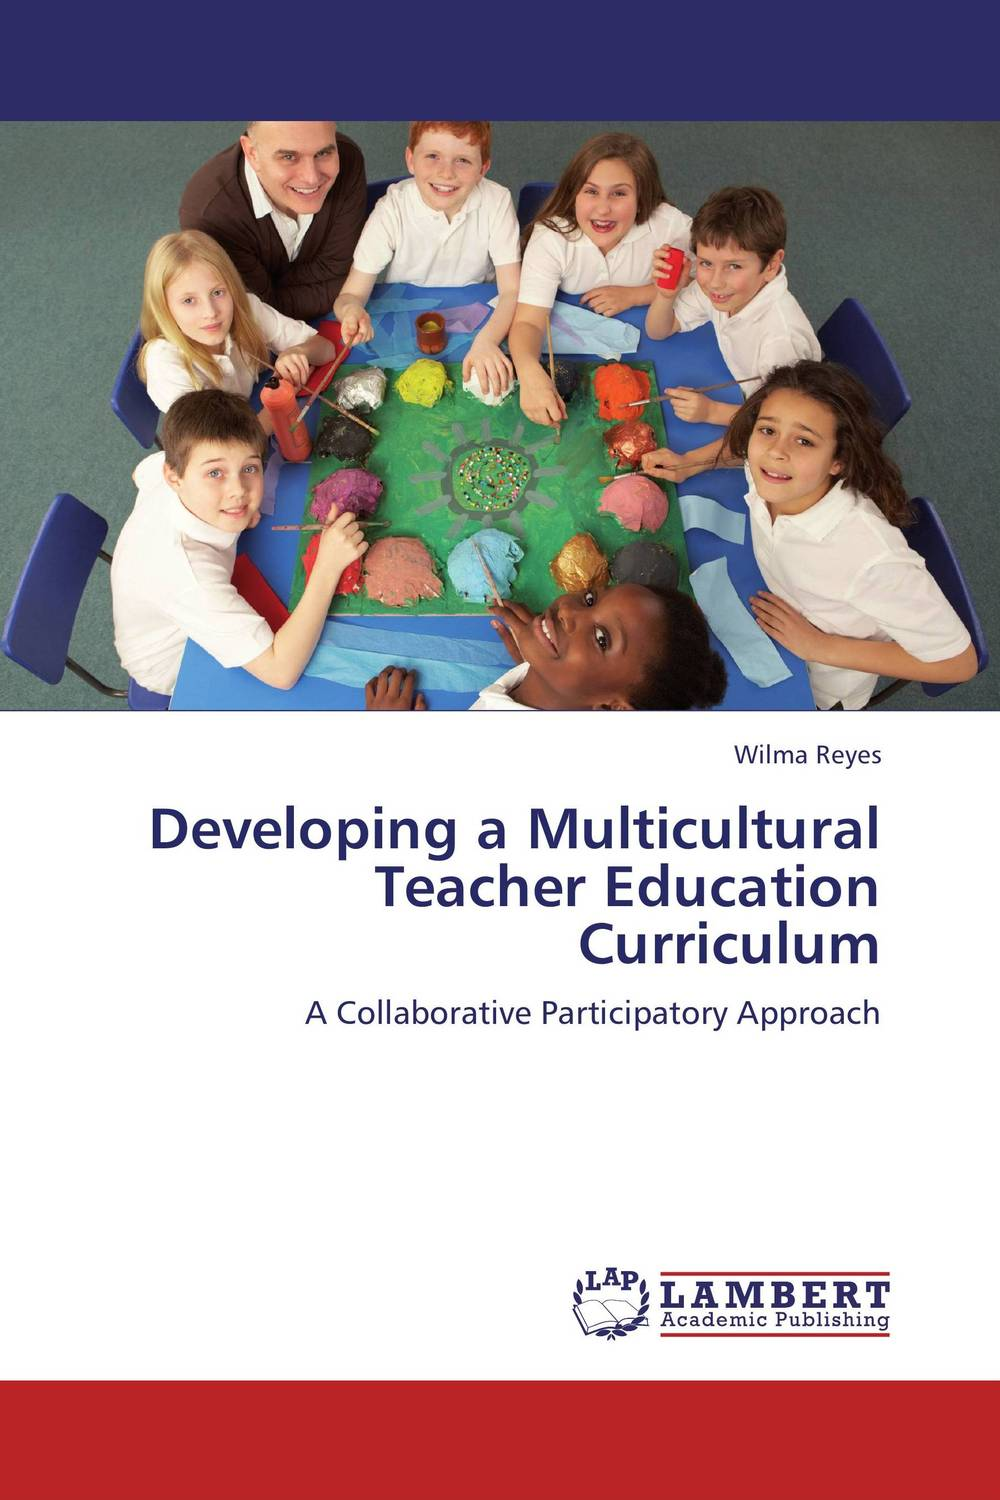 Developing a Multicultural Teacher Education Curriculum reflective approach to education